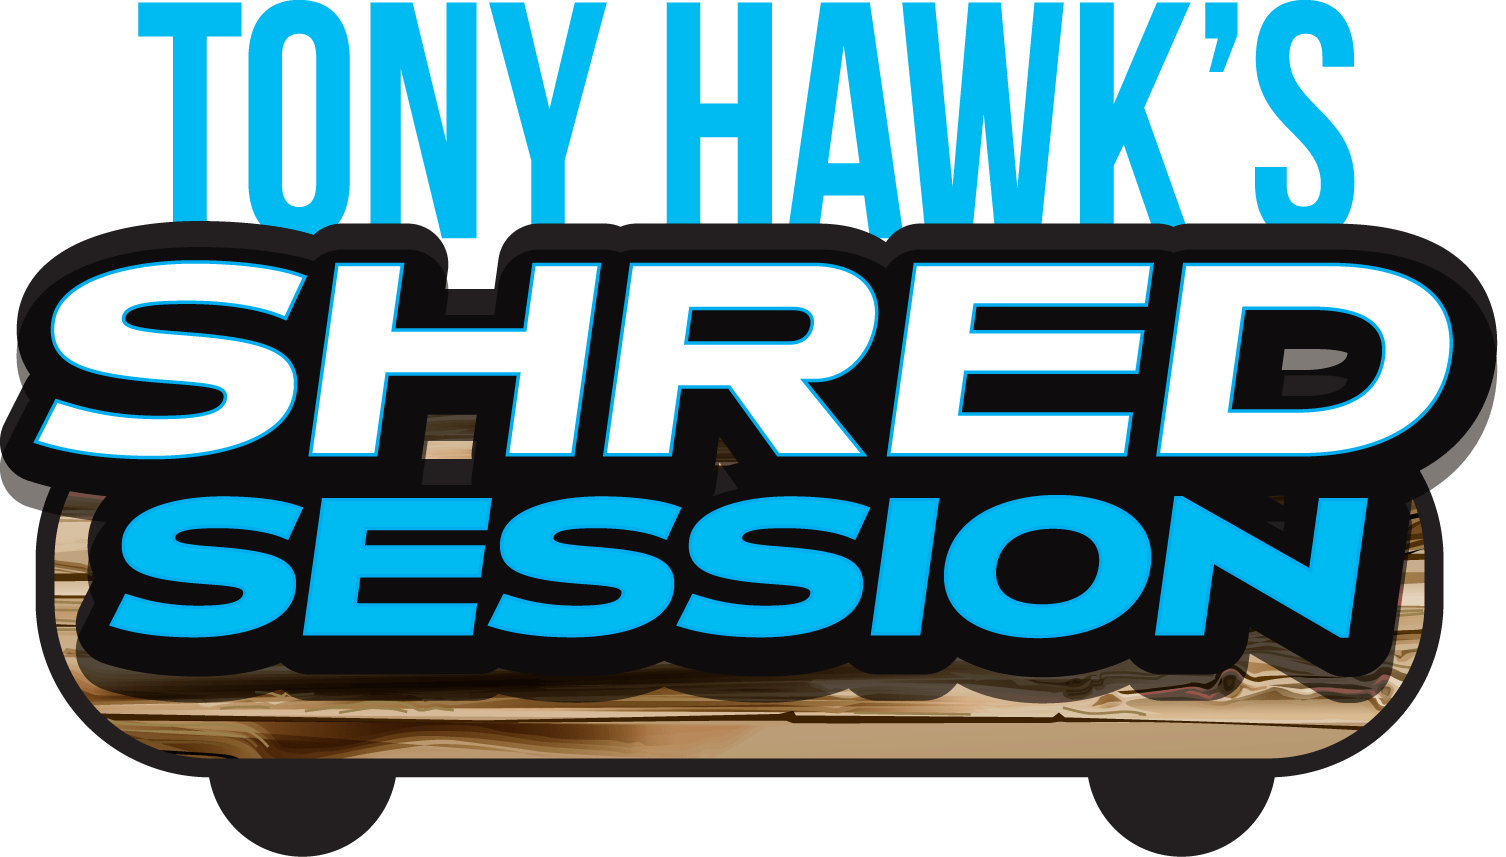 Tony Hawk's Shred Session sortira cet été sur Android et iOS